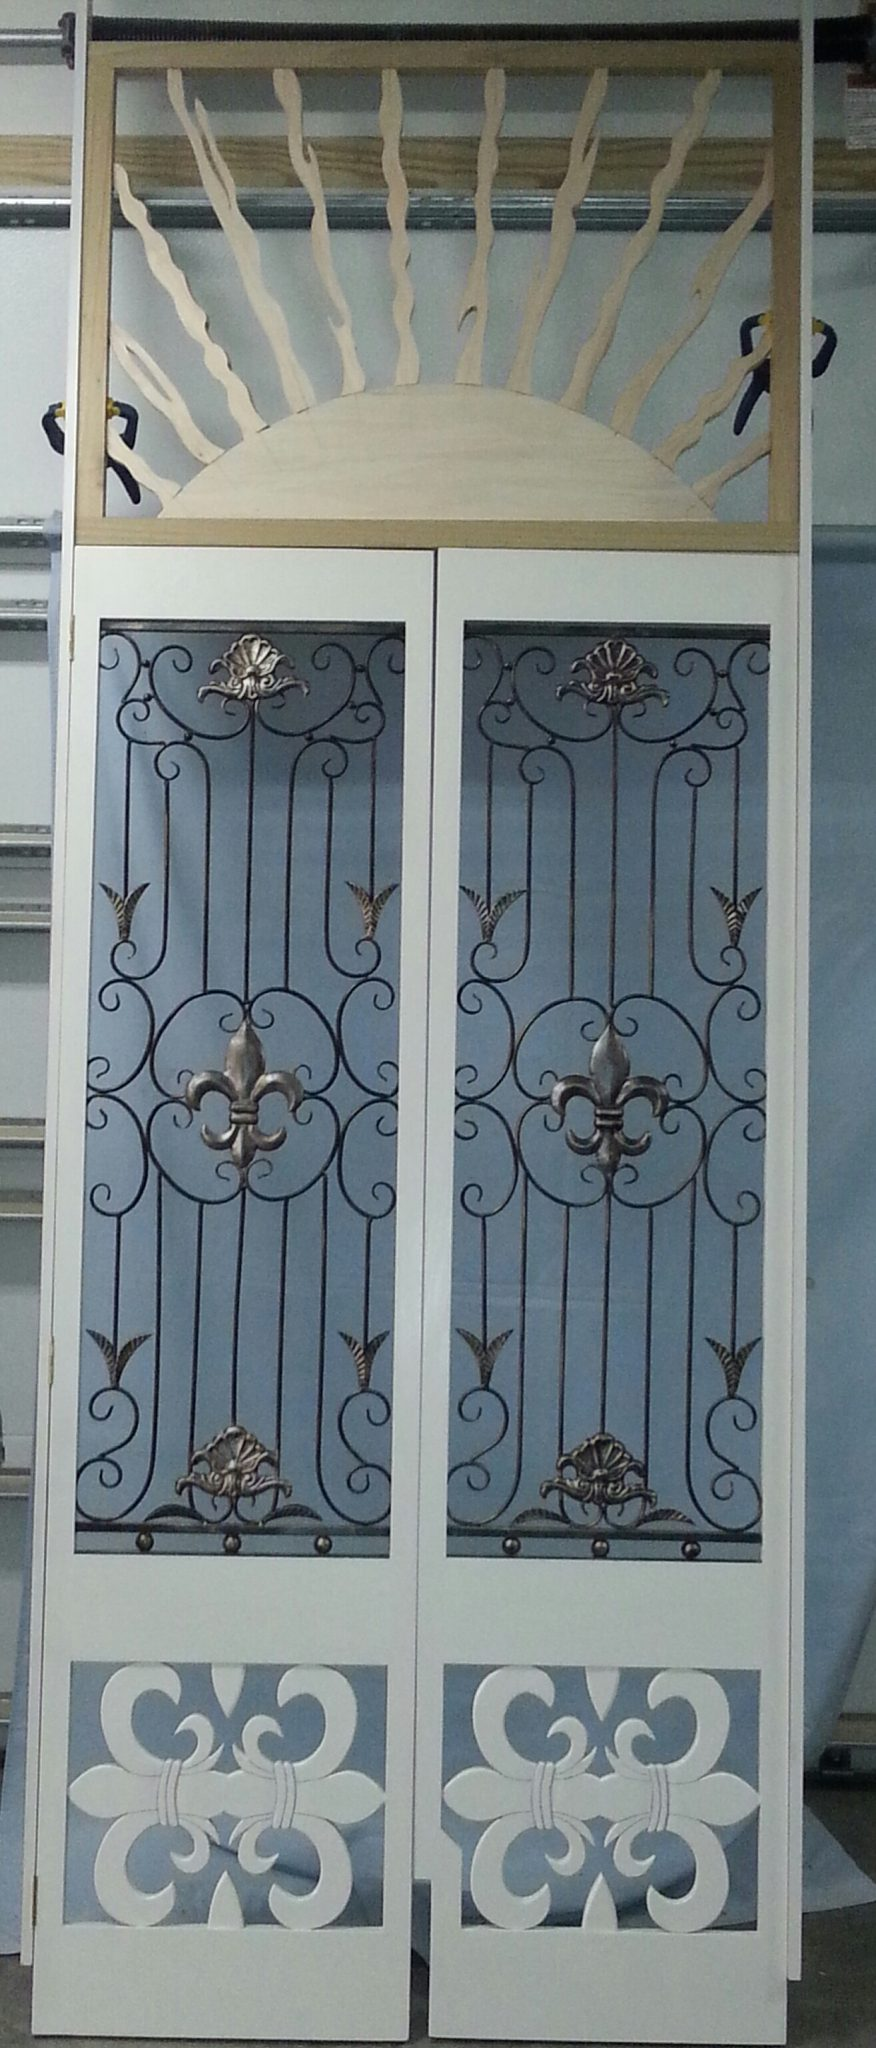 Custom made door set for a stairway entrance, using the customers metal flour delis grilles.  The top sunburst is also painted white.